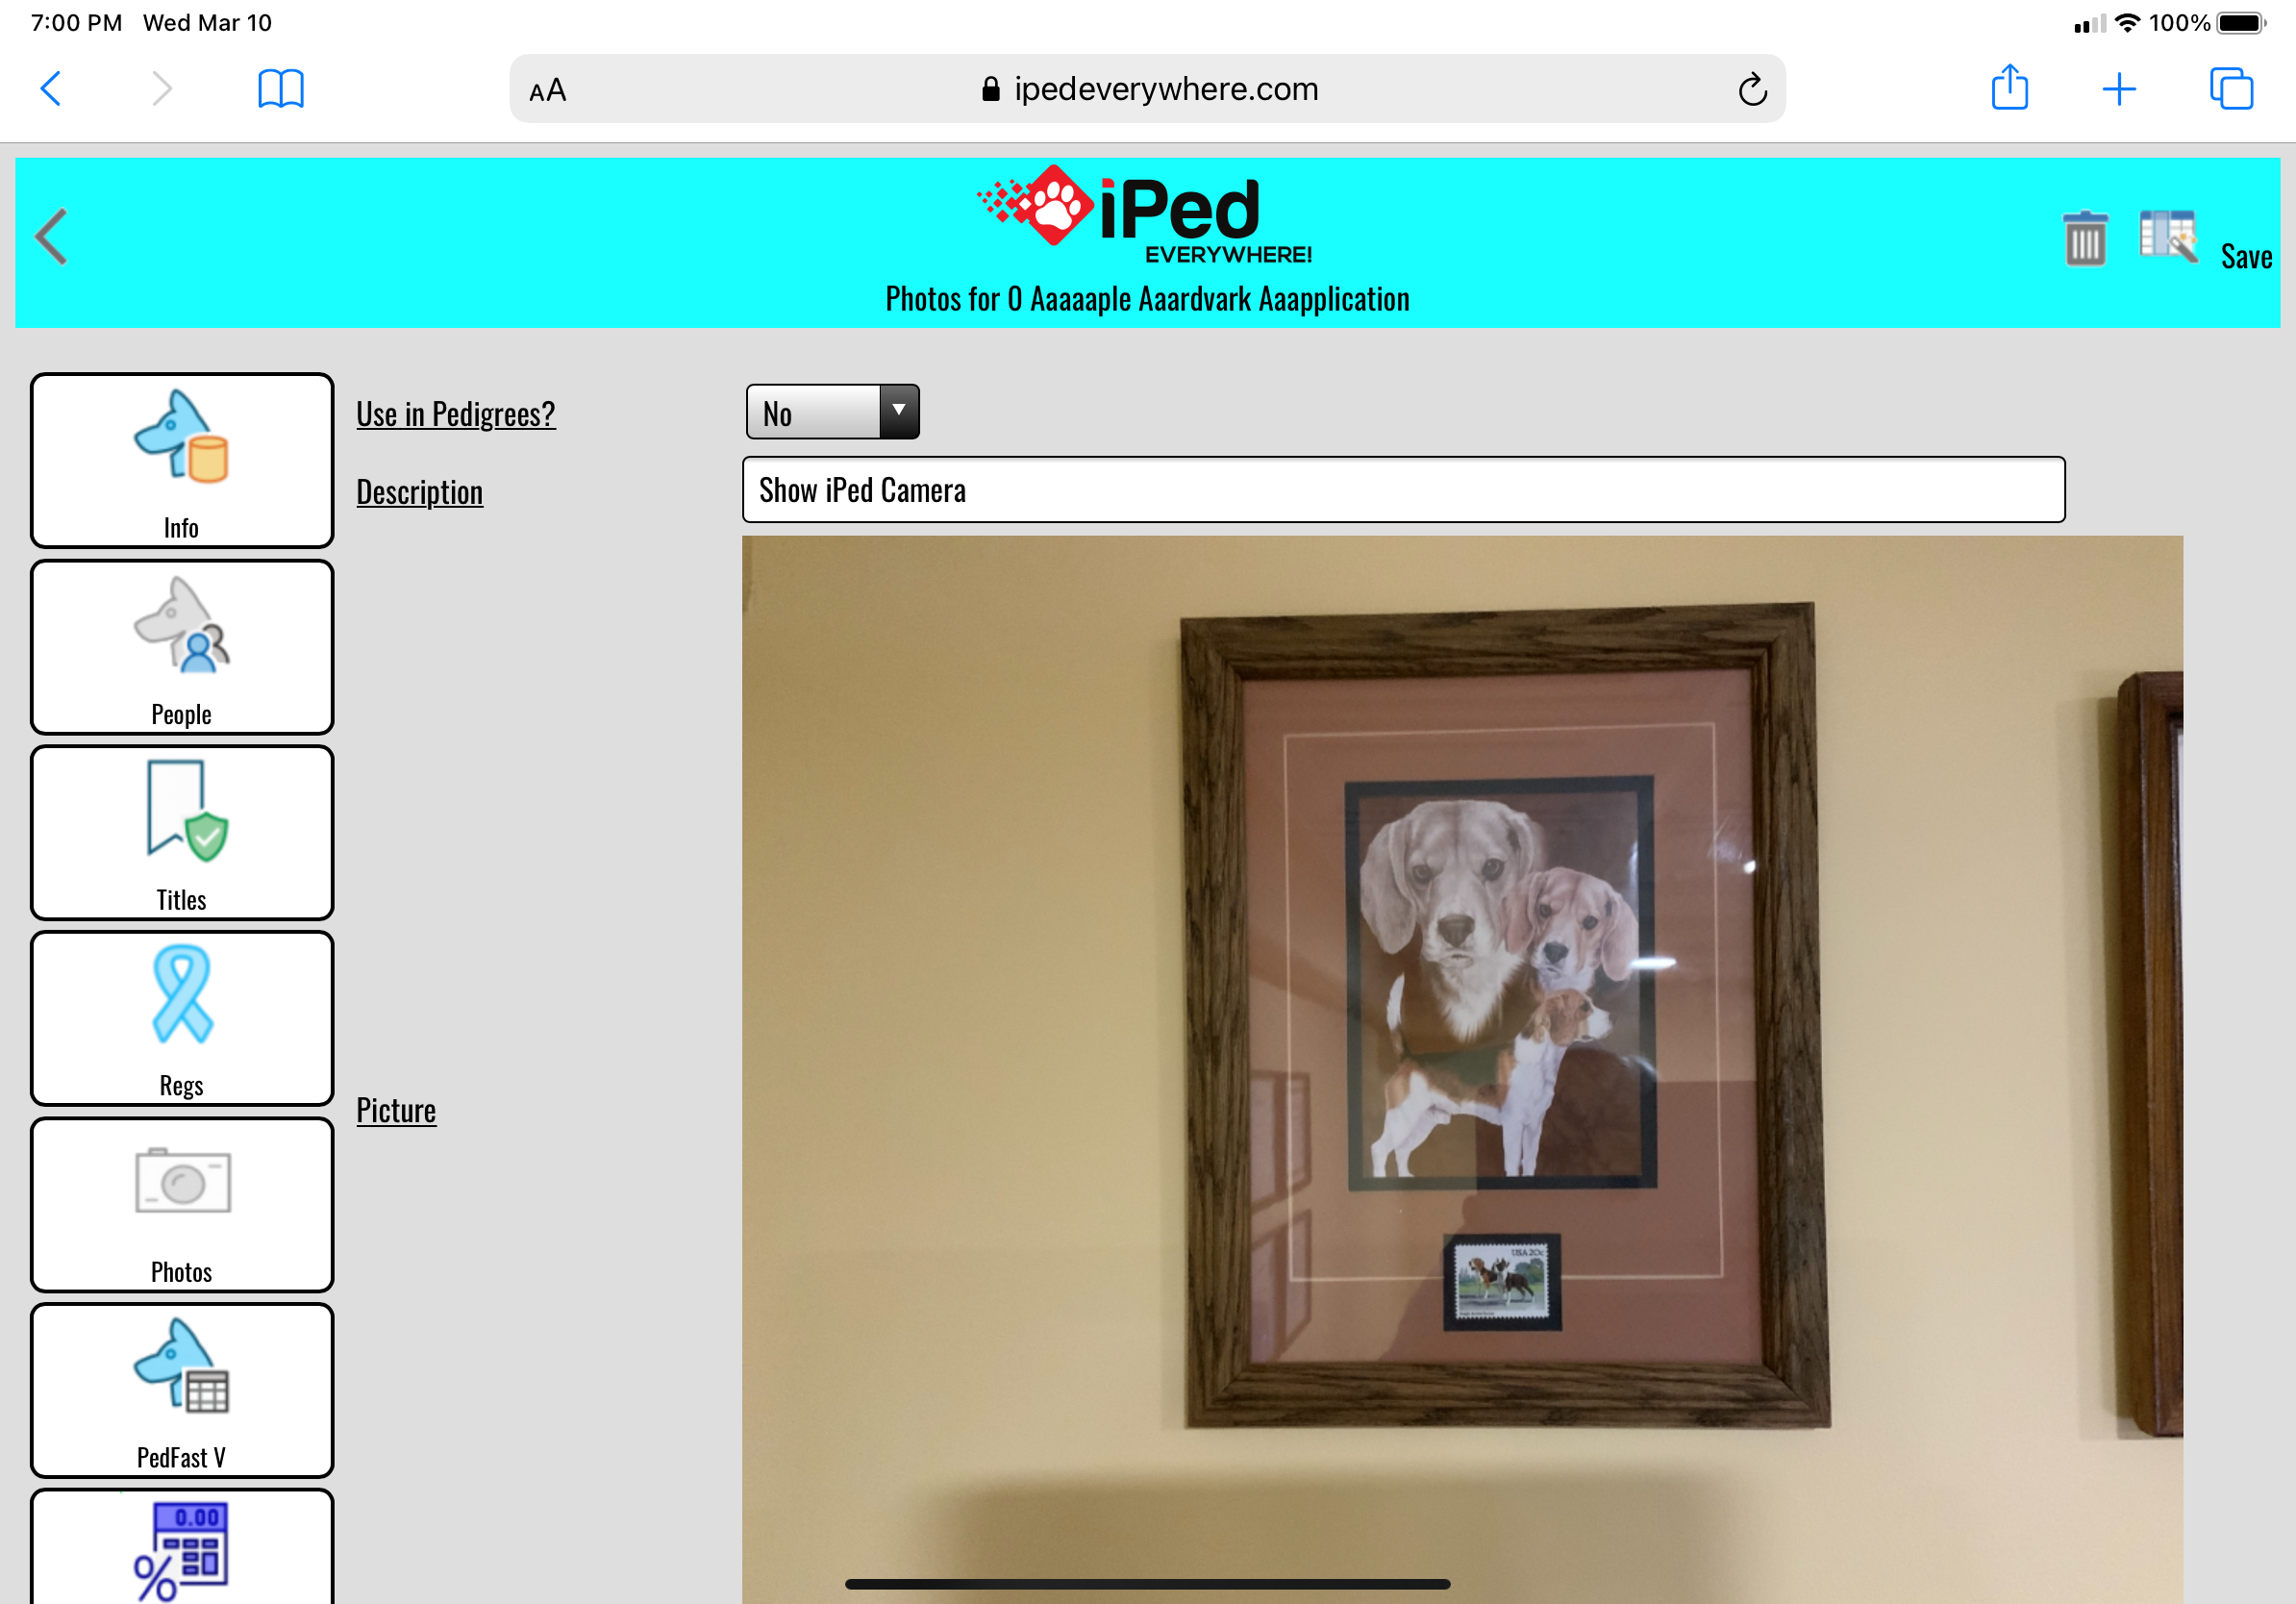 iPed Everywhere for device browser